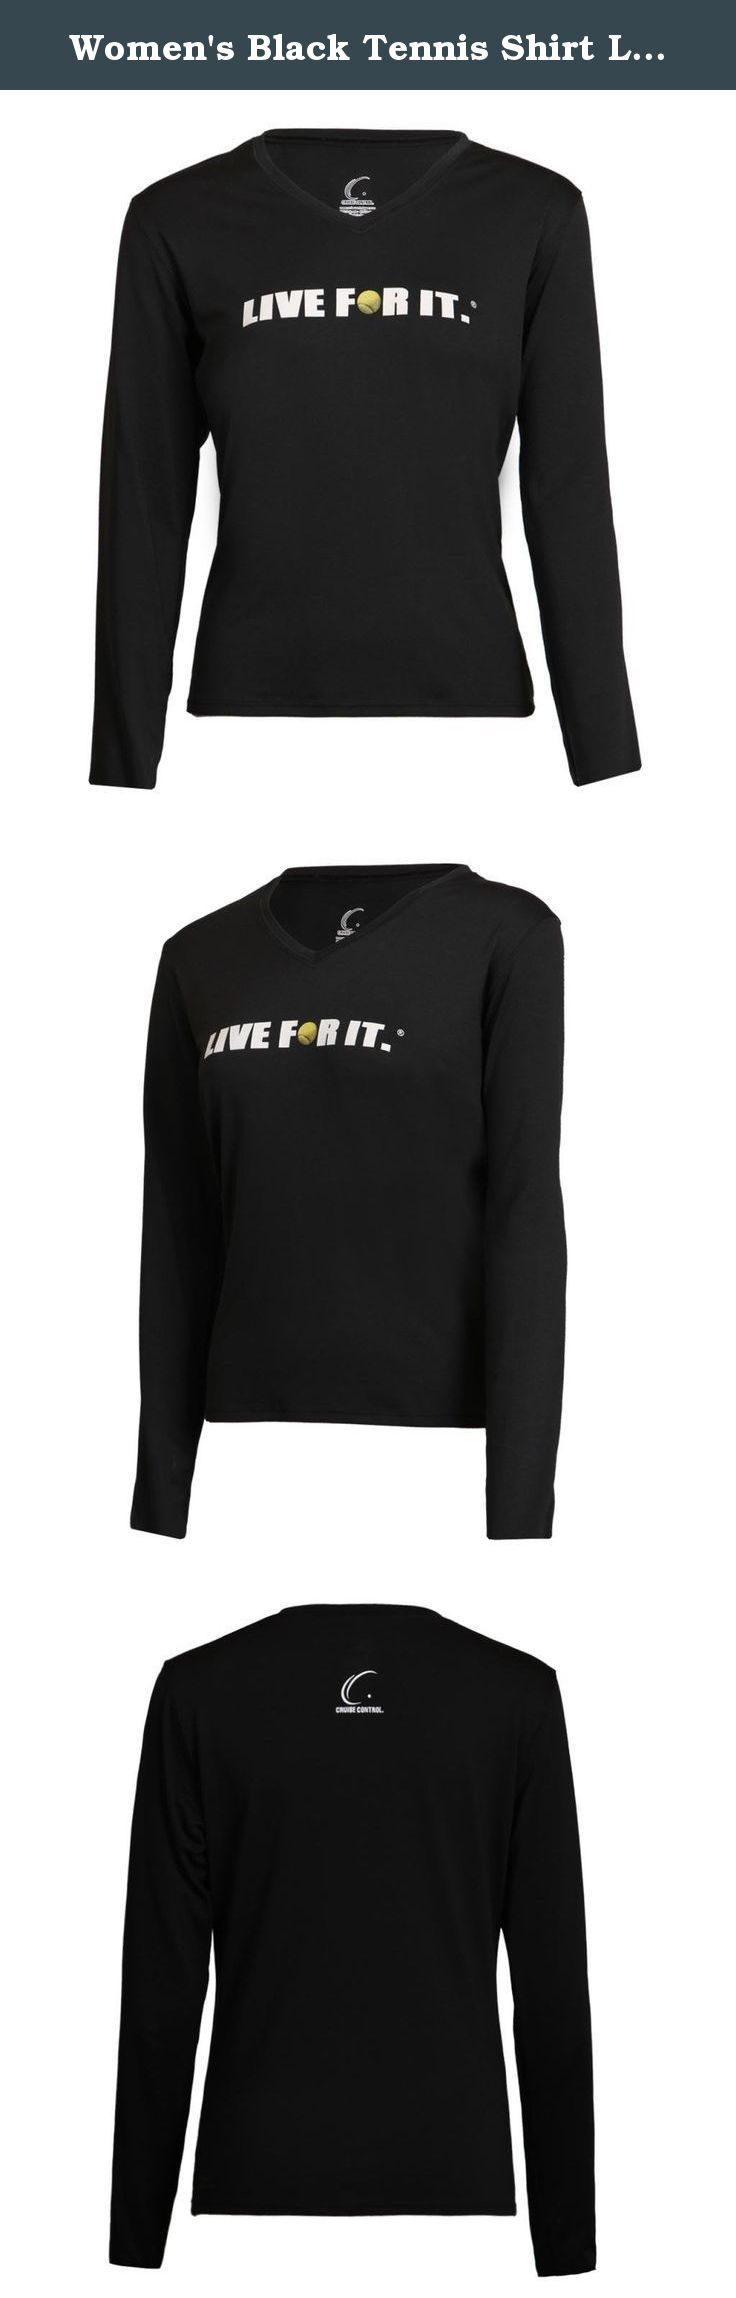 """Women's Black Tennis Shirt Long Sleeve Athletic Performance Live For It, Cruise Control, Size MEDIUM. This comfortable v-neck long sleeve performance tee is designed with a contoured fit to compliment your every curve. The soft antibacterial and moisture management tee will quickly evaporate perspiration. This long sleeve performance tee features the signature Cruise Control LIVE FOR IT logo (with a tennis ball as the """"O"""") on the chest and Cruise Control logo on top back of shirts."""